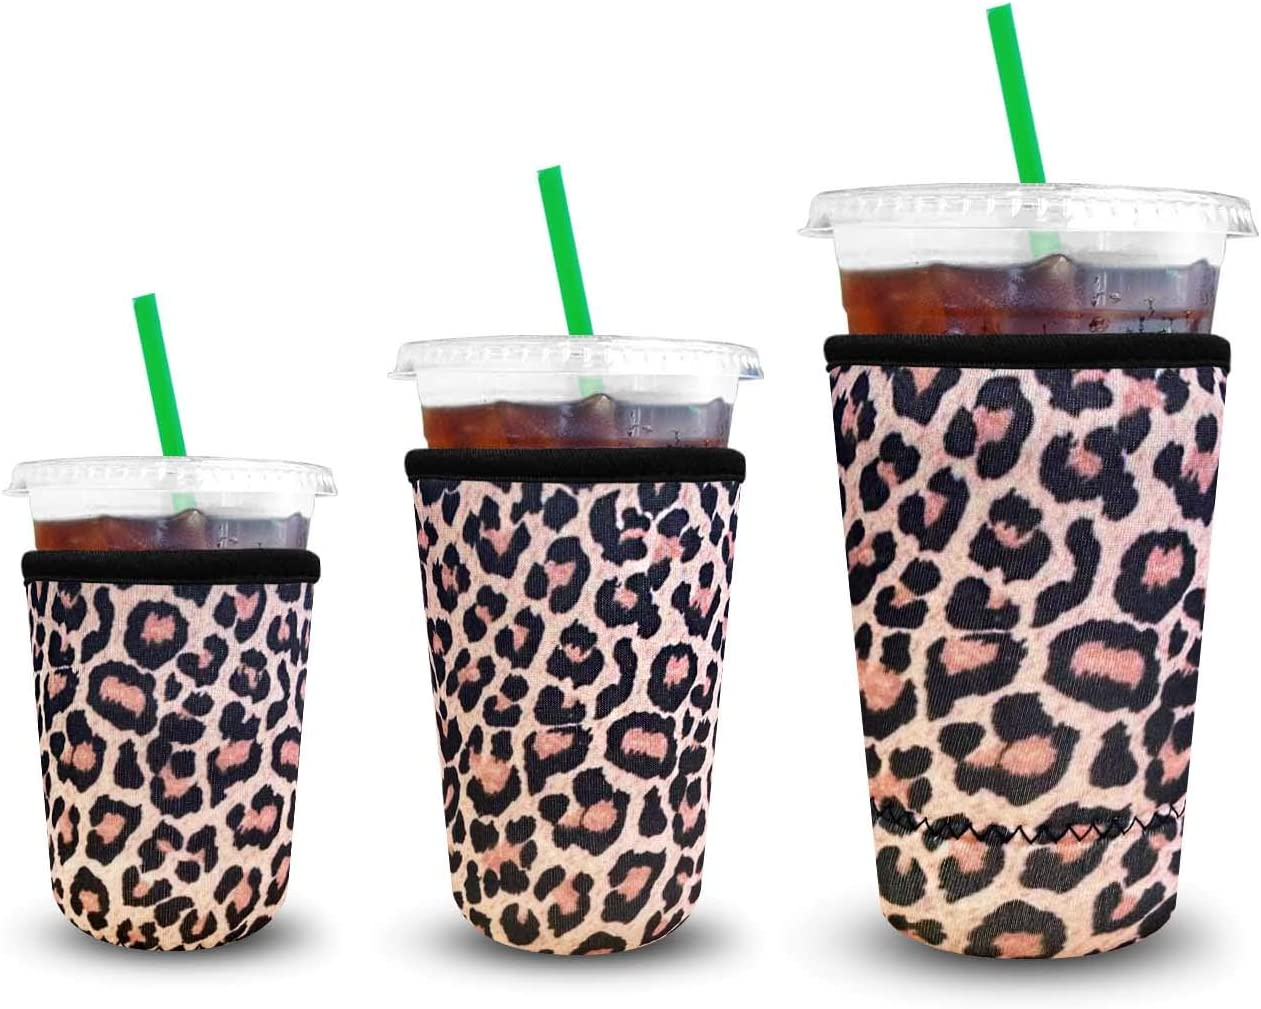 XccMe Reusable Iced Coffee Sleeves Neoprene Insulator Cup Cover for Cold Drinks,Beverages Holder,Ideal for Dunkin Donuts, Starbucks Coffee, McDonalds (Leopard, 3Pack Sm-Md-Lg)